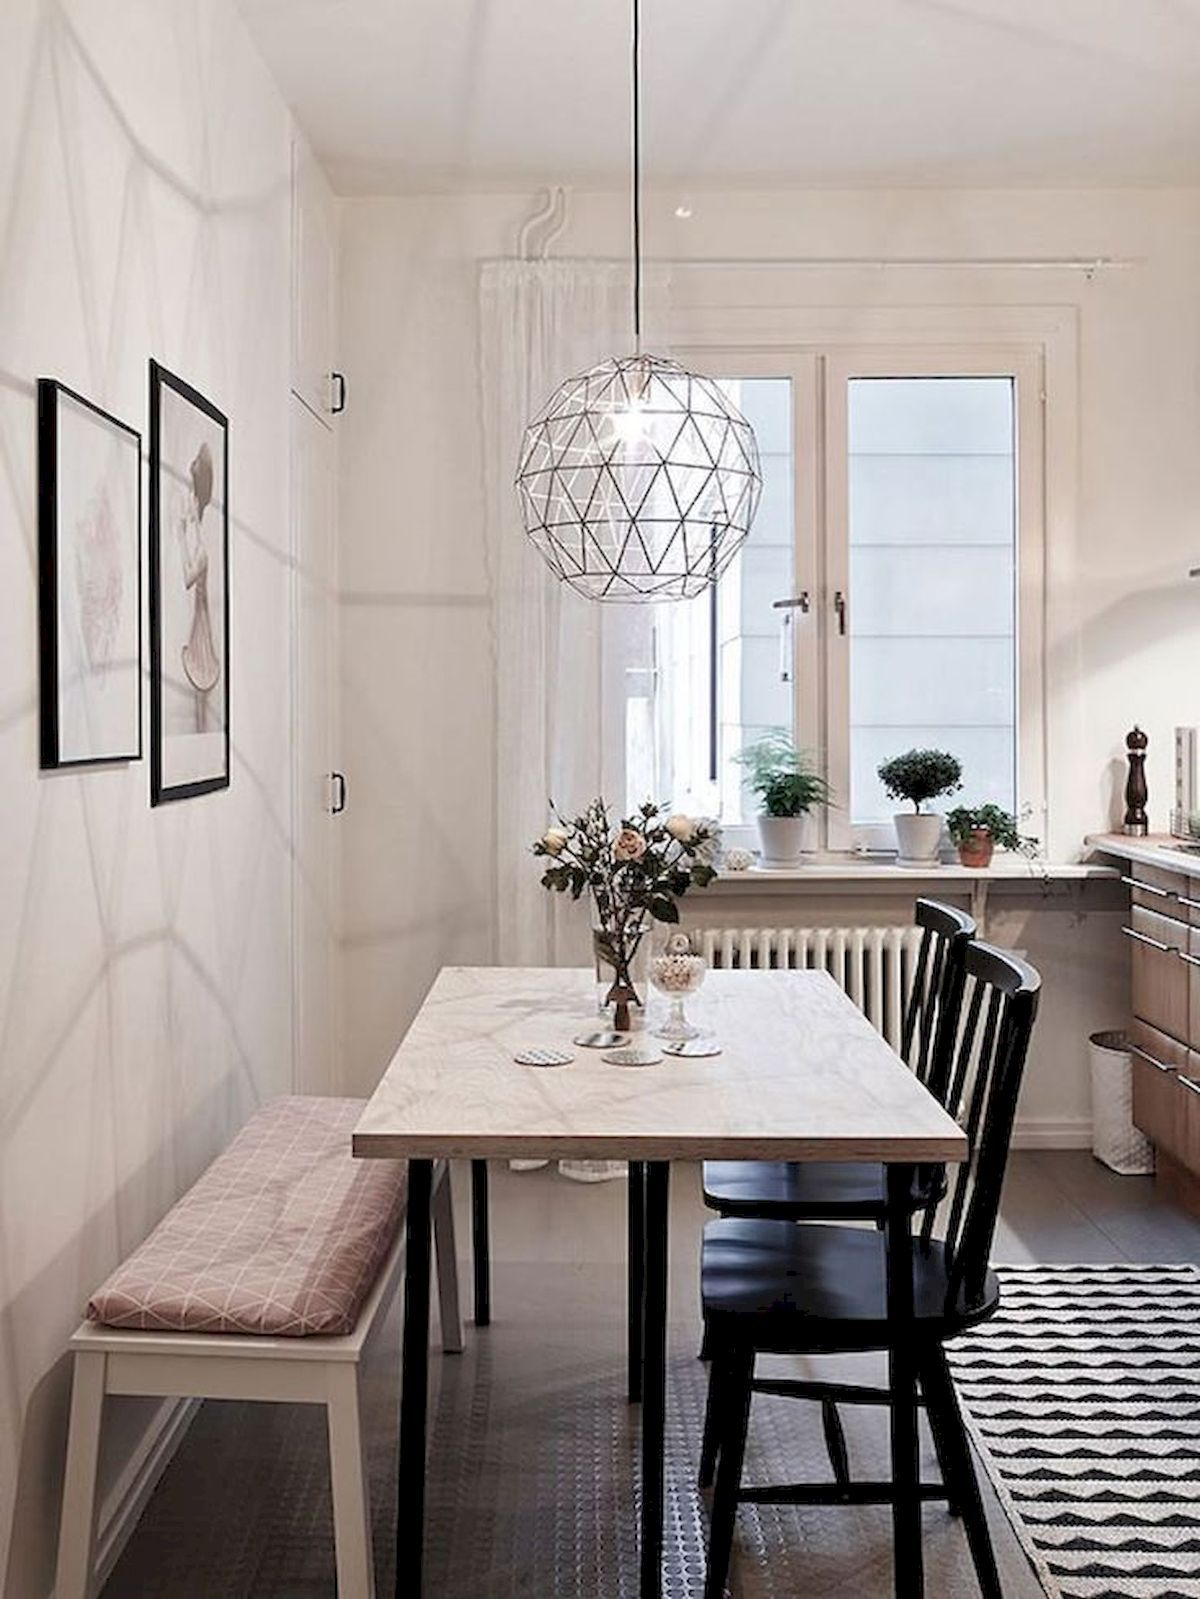 52 Beautiful Small Ideas On A Budget Dining Room 24 Shairoom Com Dining Room Budget Apartment Dining Dining Room Small